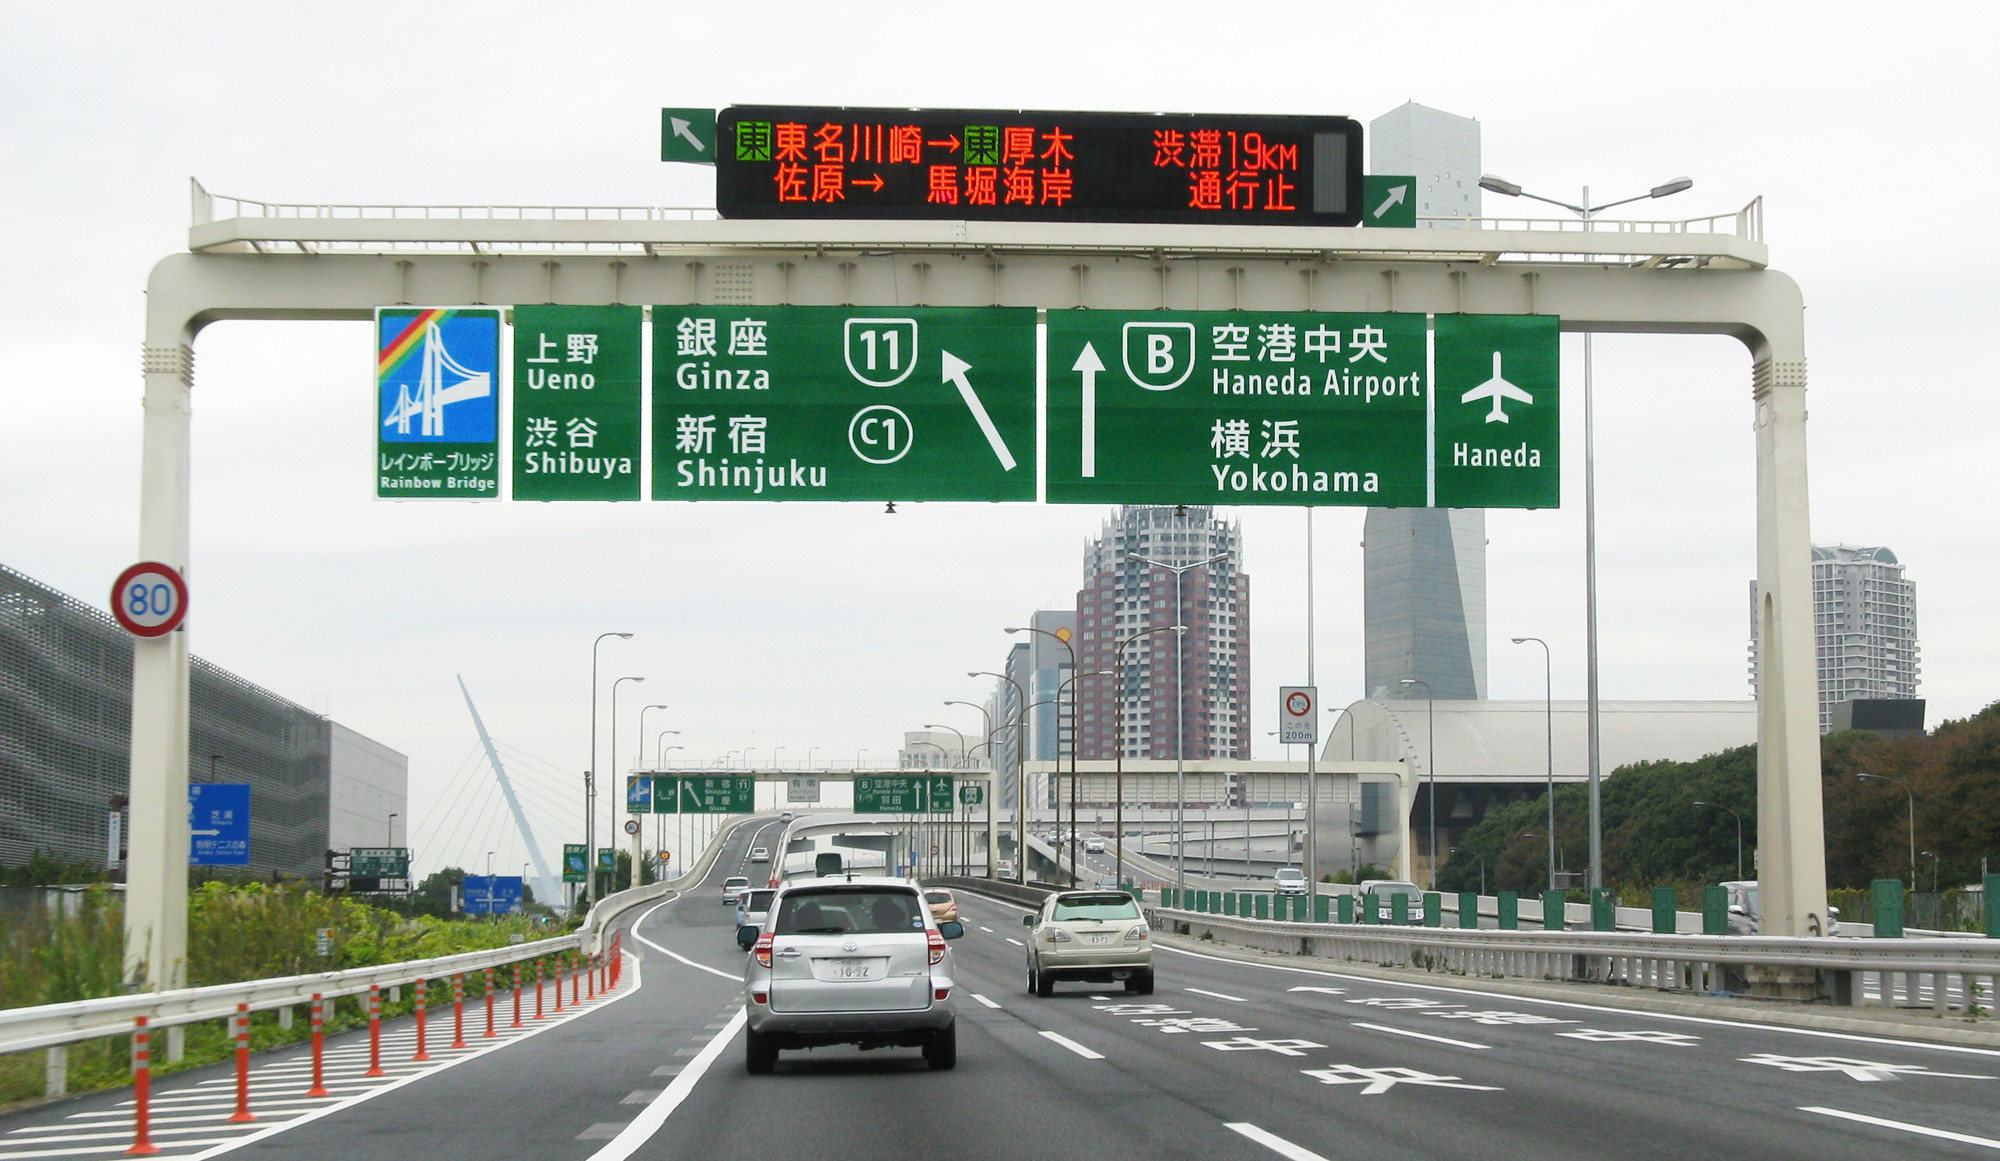 Traffic tolls to be increased to try to help ease congestion during Tokyo 2020